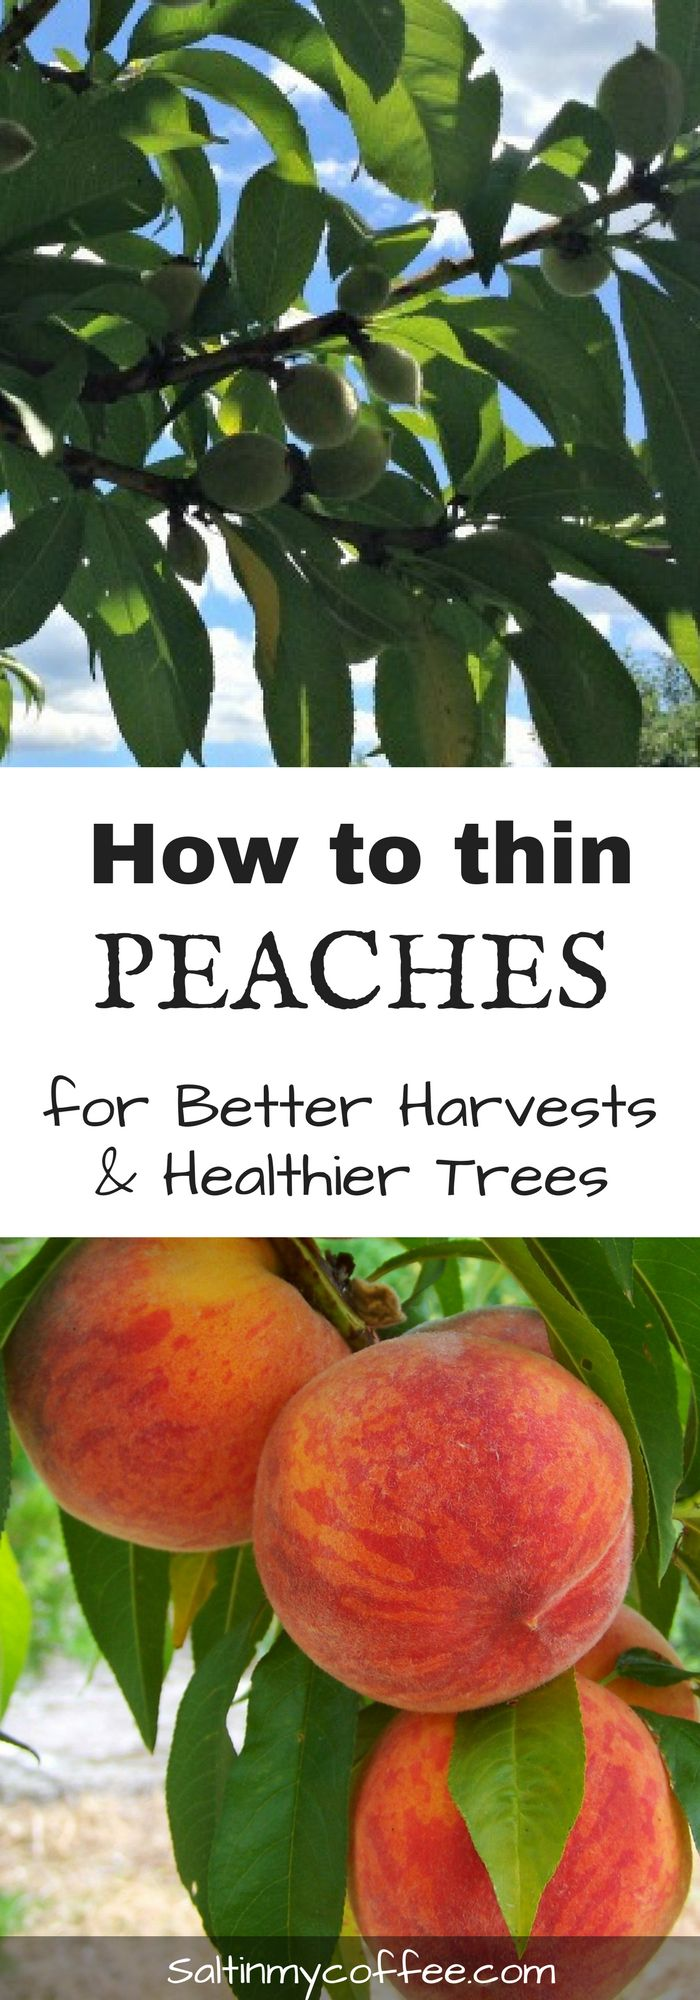 Thinning peaches helps ensure better harvests, and safeguards the health of the fruit tree. Here's how to thin peach trees!